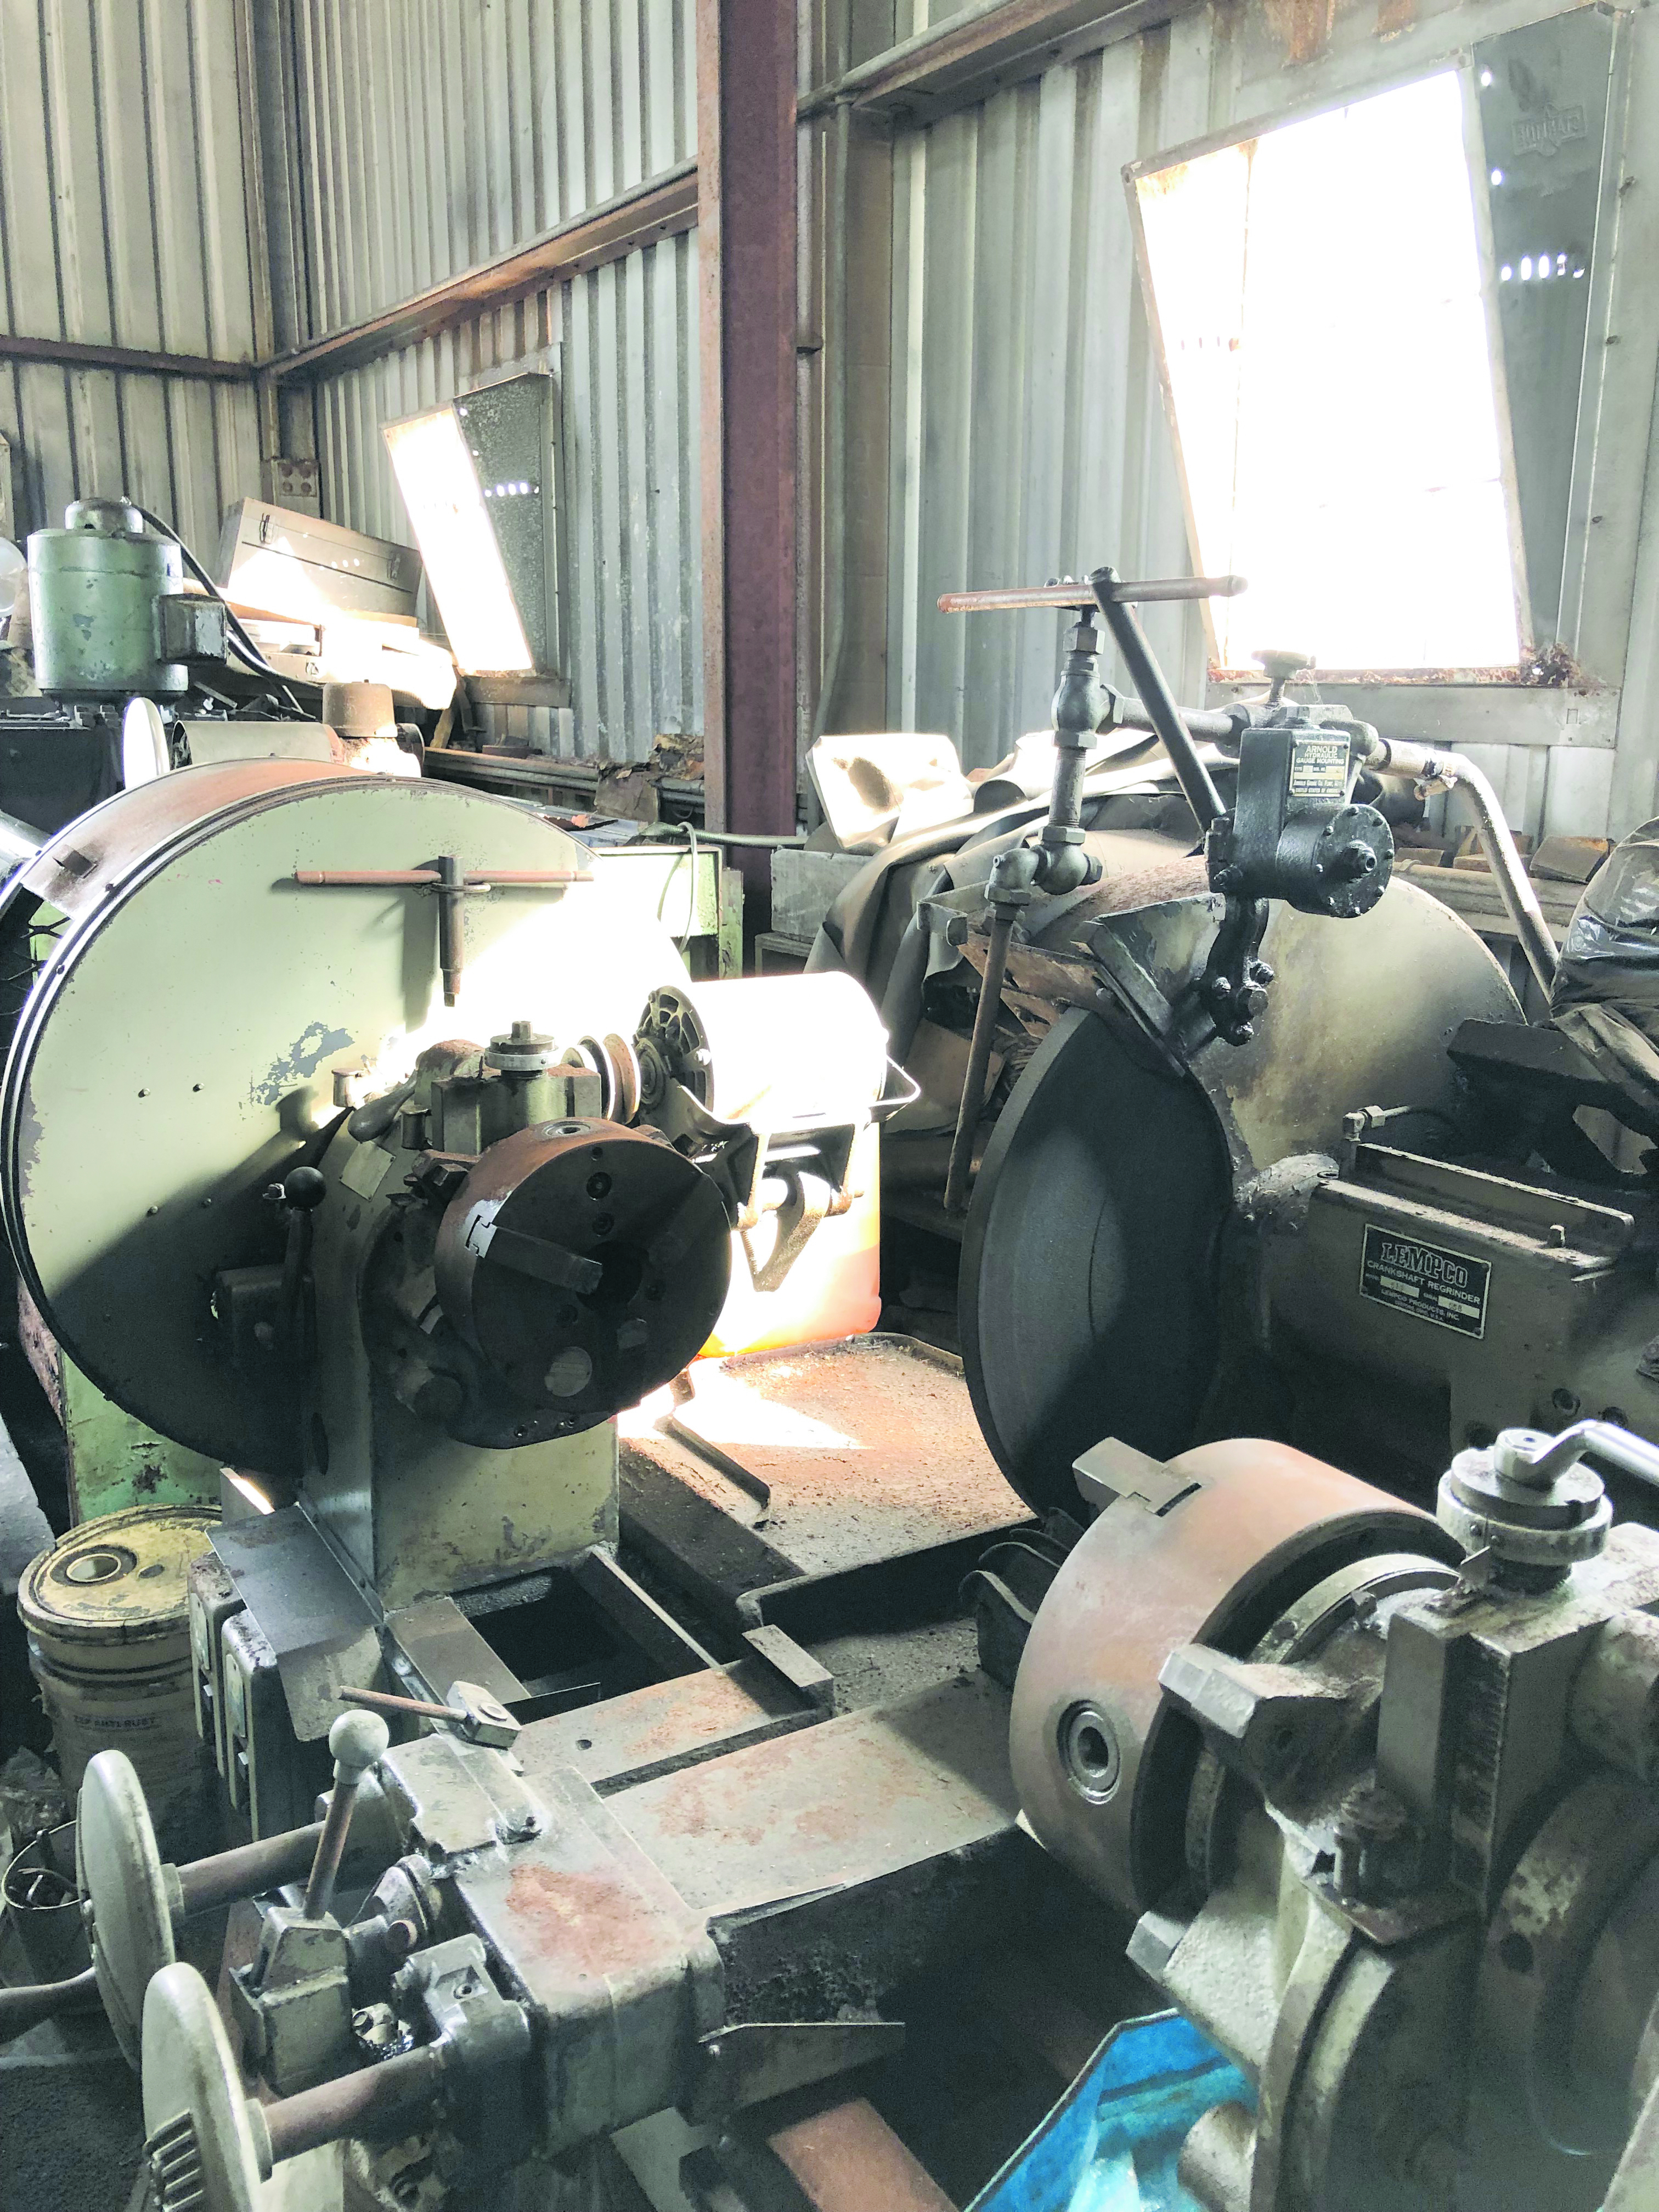 In 1959, Tomeichi Seki took a big risk and purchased a crankshaft grinder machine for $11,000, which, at the time, was the same purchase price as a house.